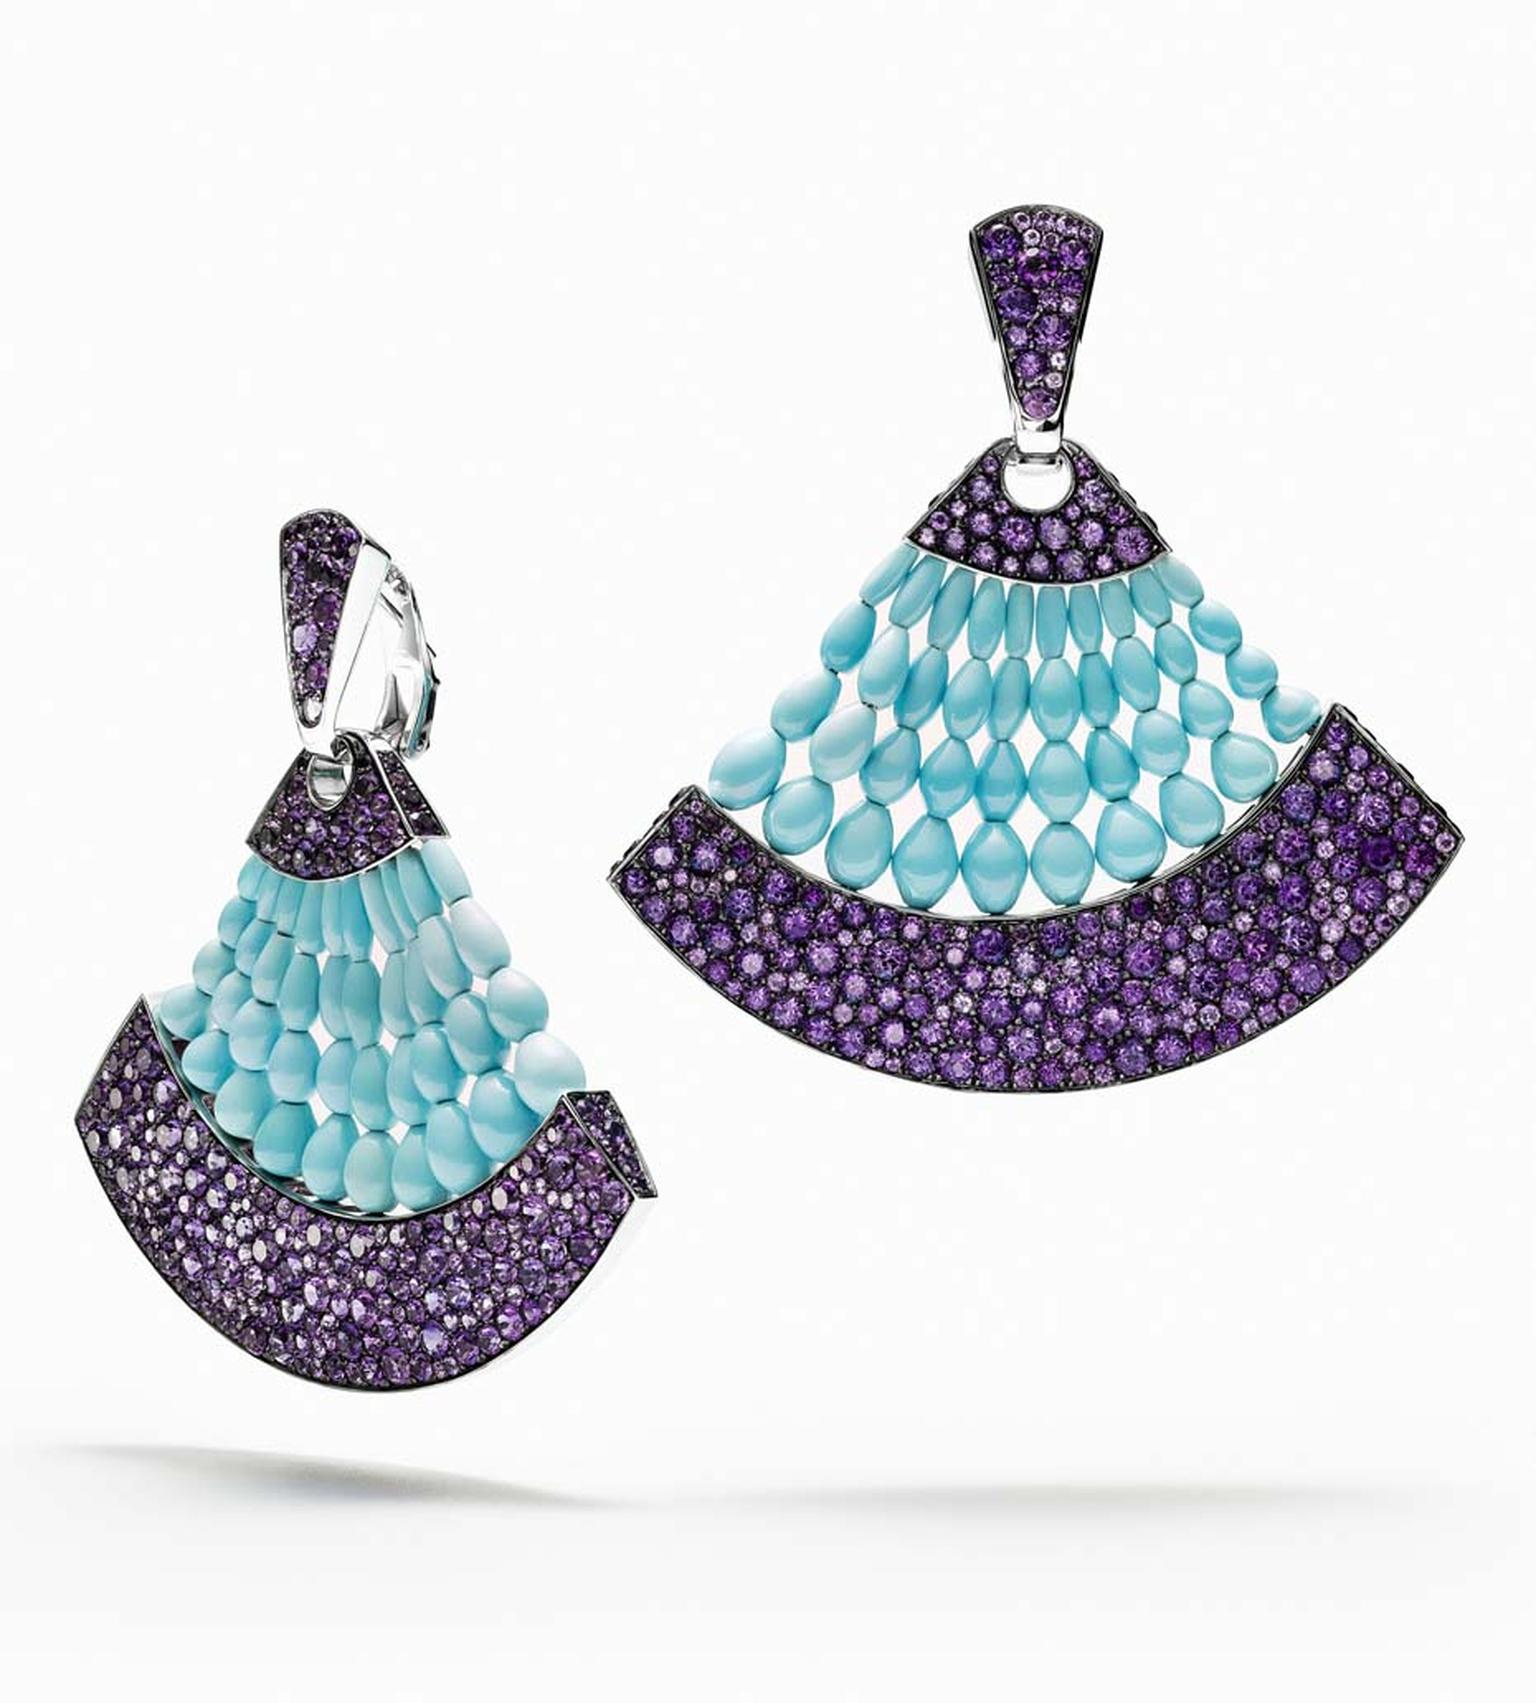 Turquoise_De Grisogono_Melody of Colours Earrings in WG Turquoise & Amethyst.jpg